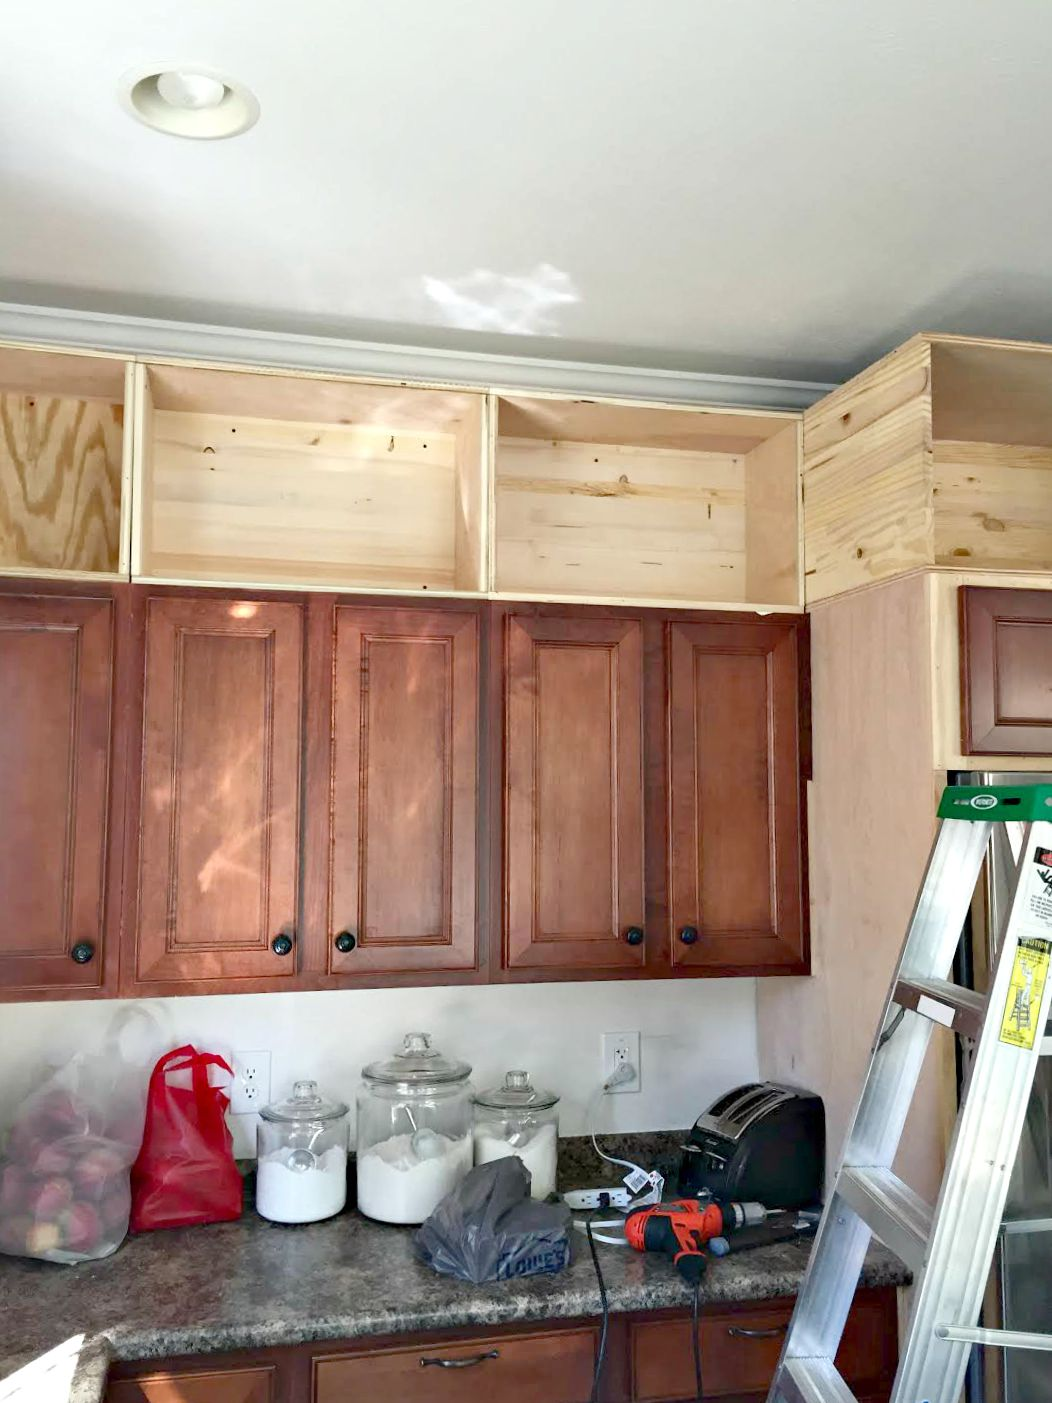 How To Extend Kitchen Cabinets To Ceiling